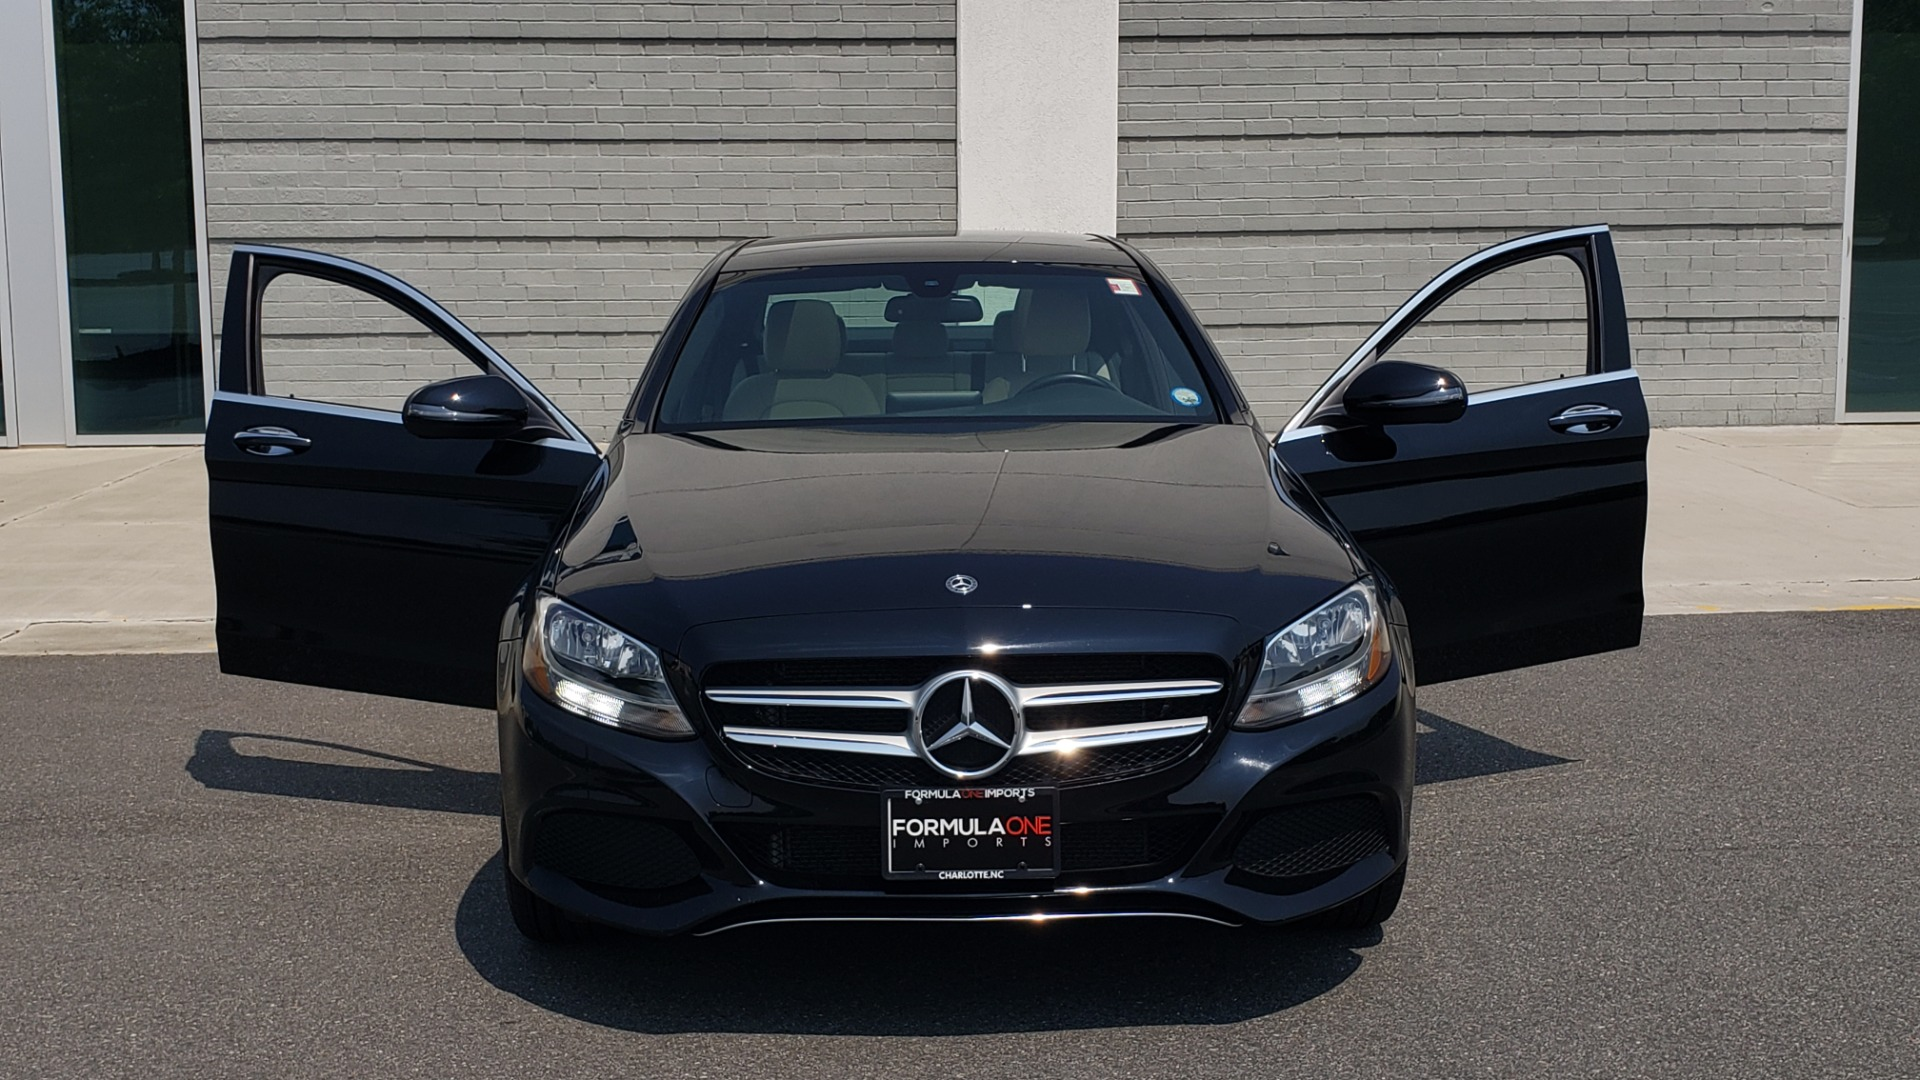 Used 2018 Mercedes-Benz C-CLASS C 300 4MATIC / PREMIUM / MULTIMEDIA / NAV / PANO-ROOF / BURMESTER for sale $30,495 at Formula Imports in Charlotte NC 28227 19